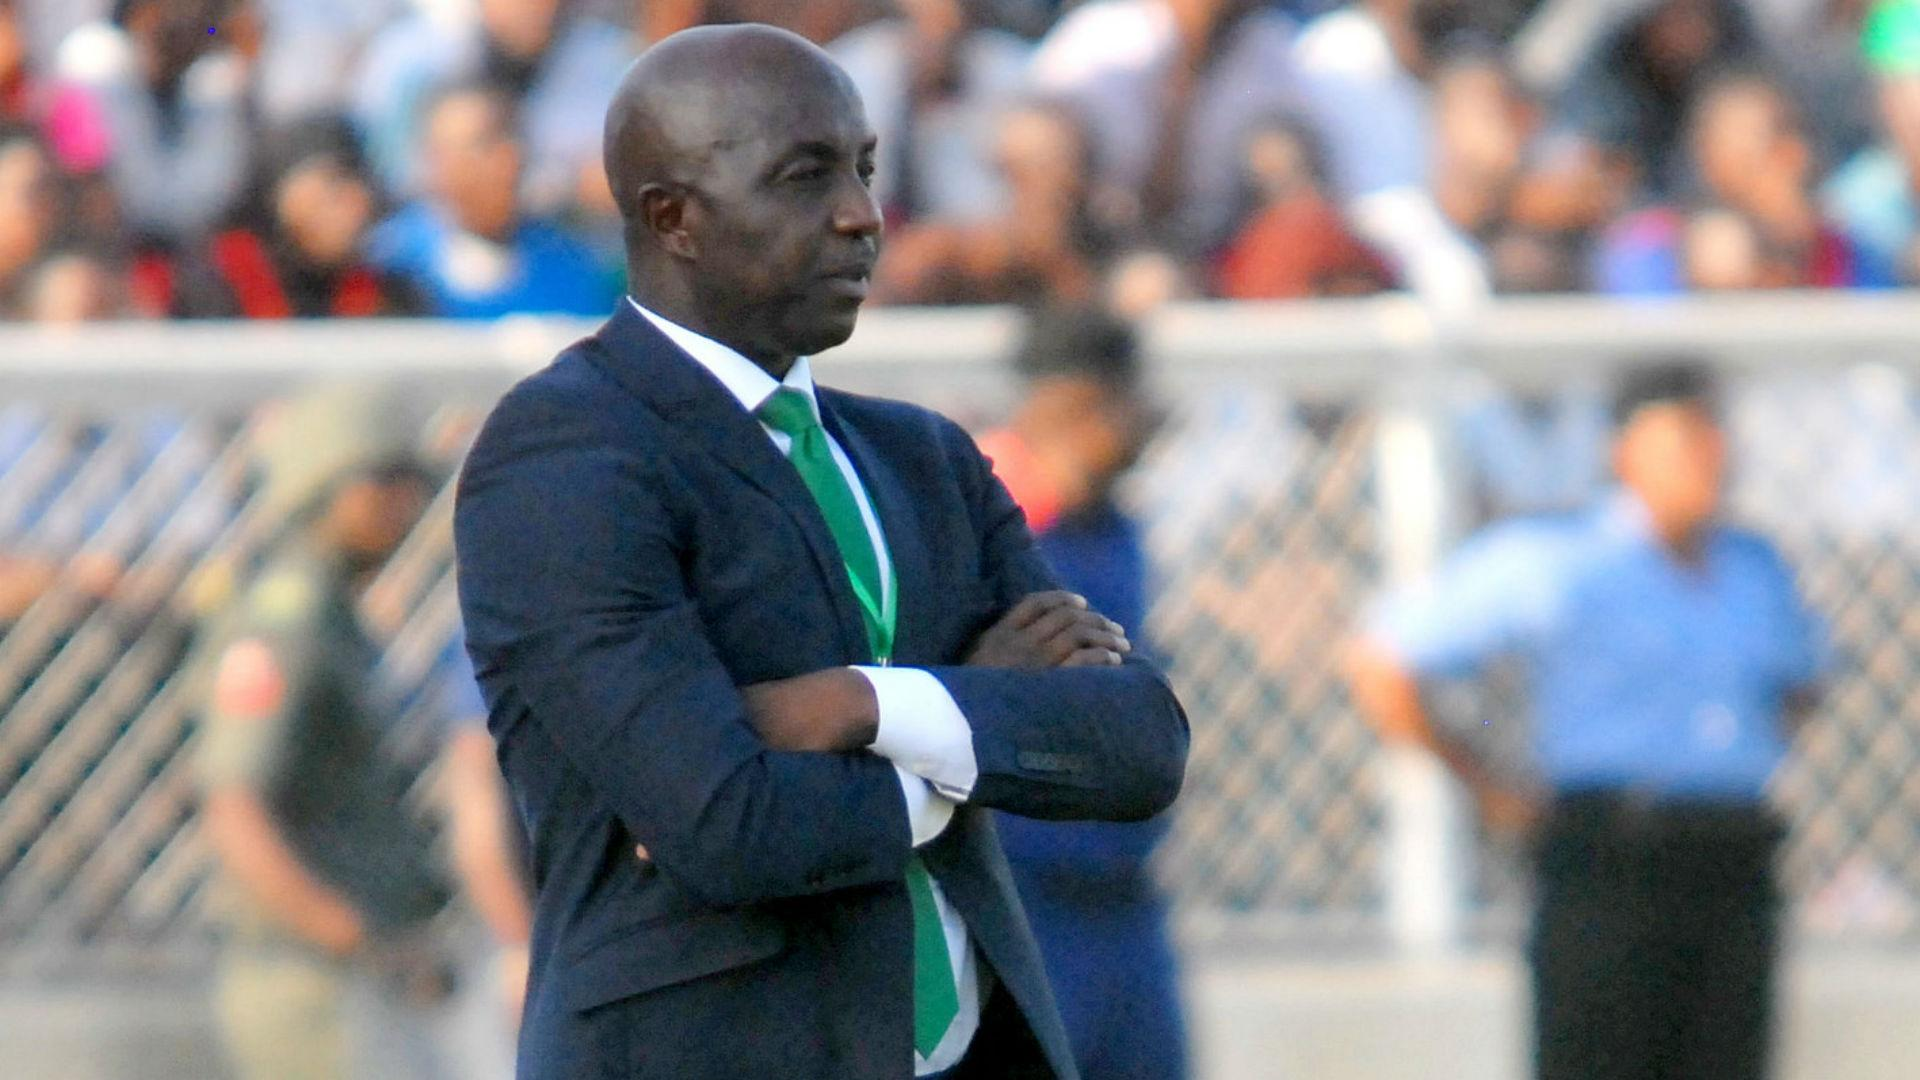 Samson Siasia vows to clear name after Fifa ban